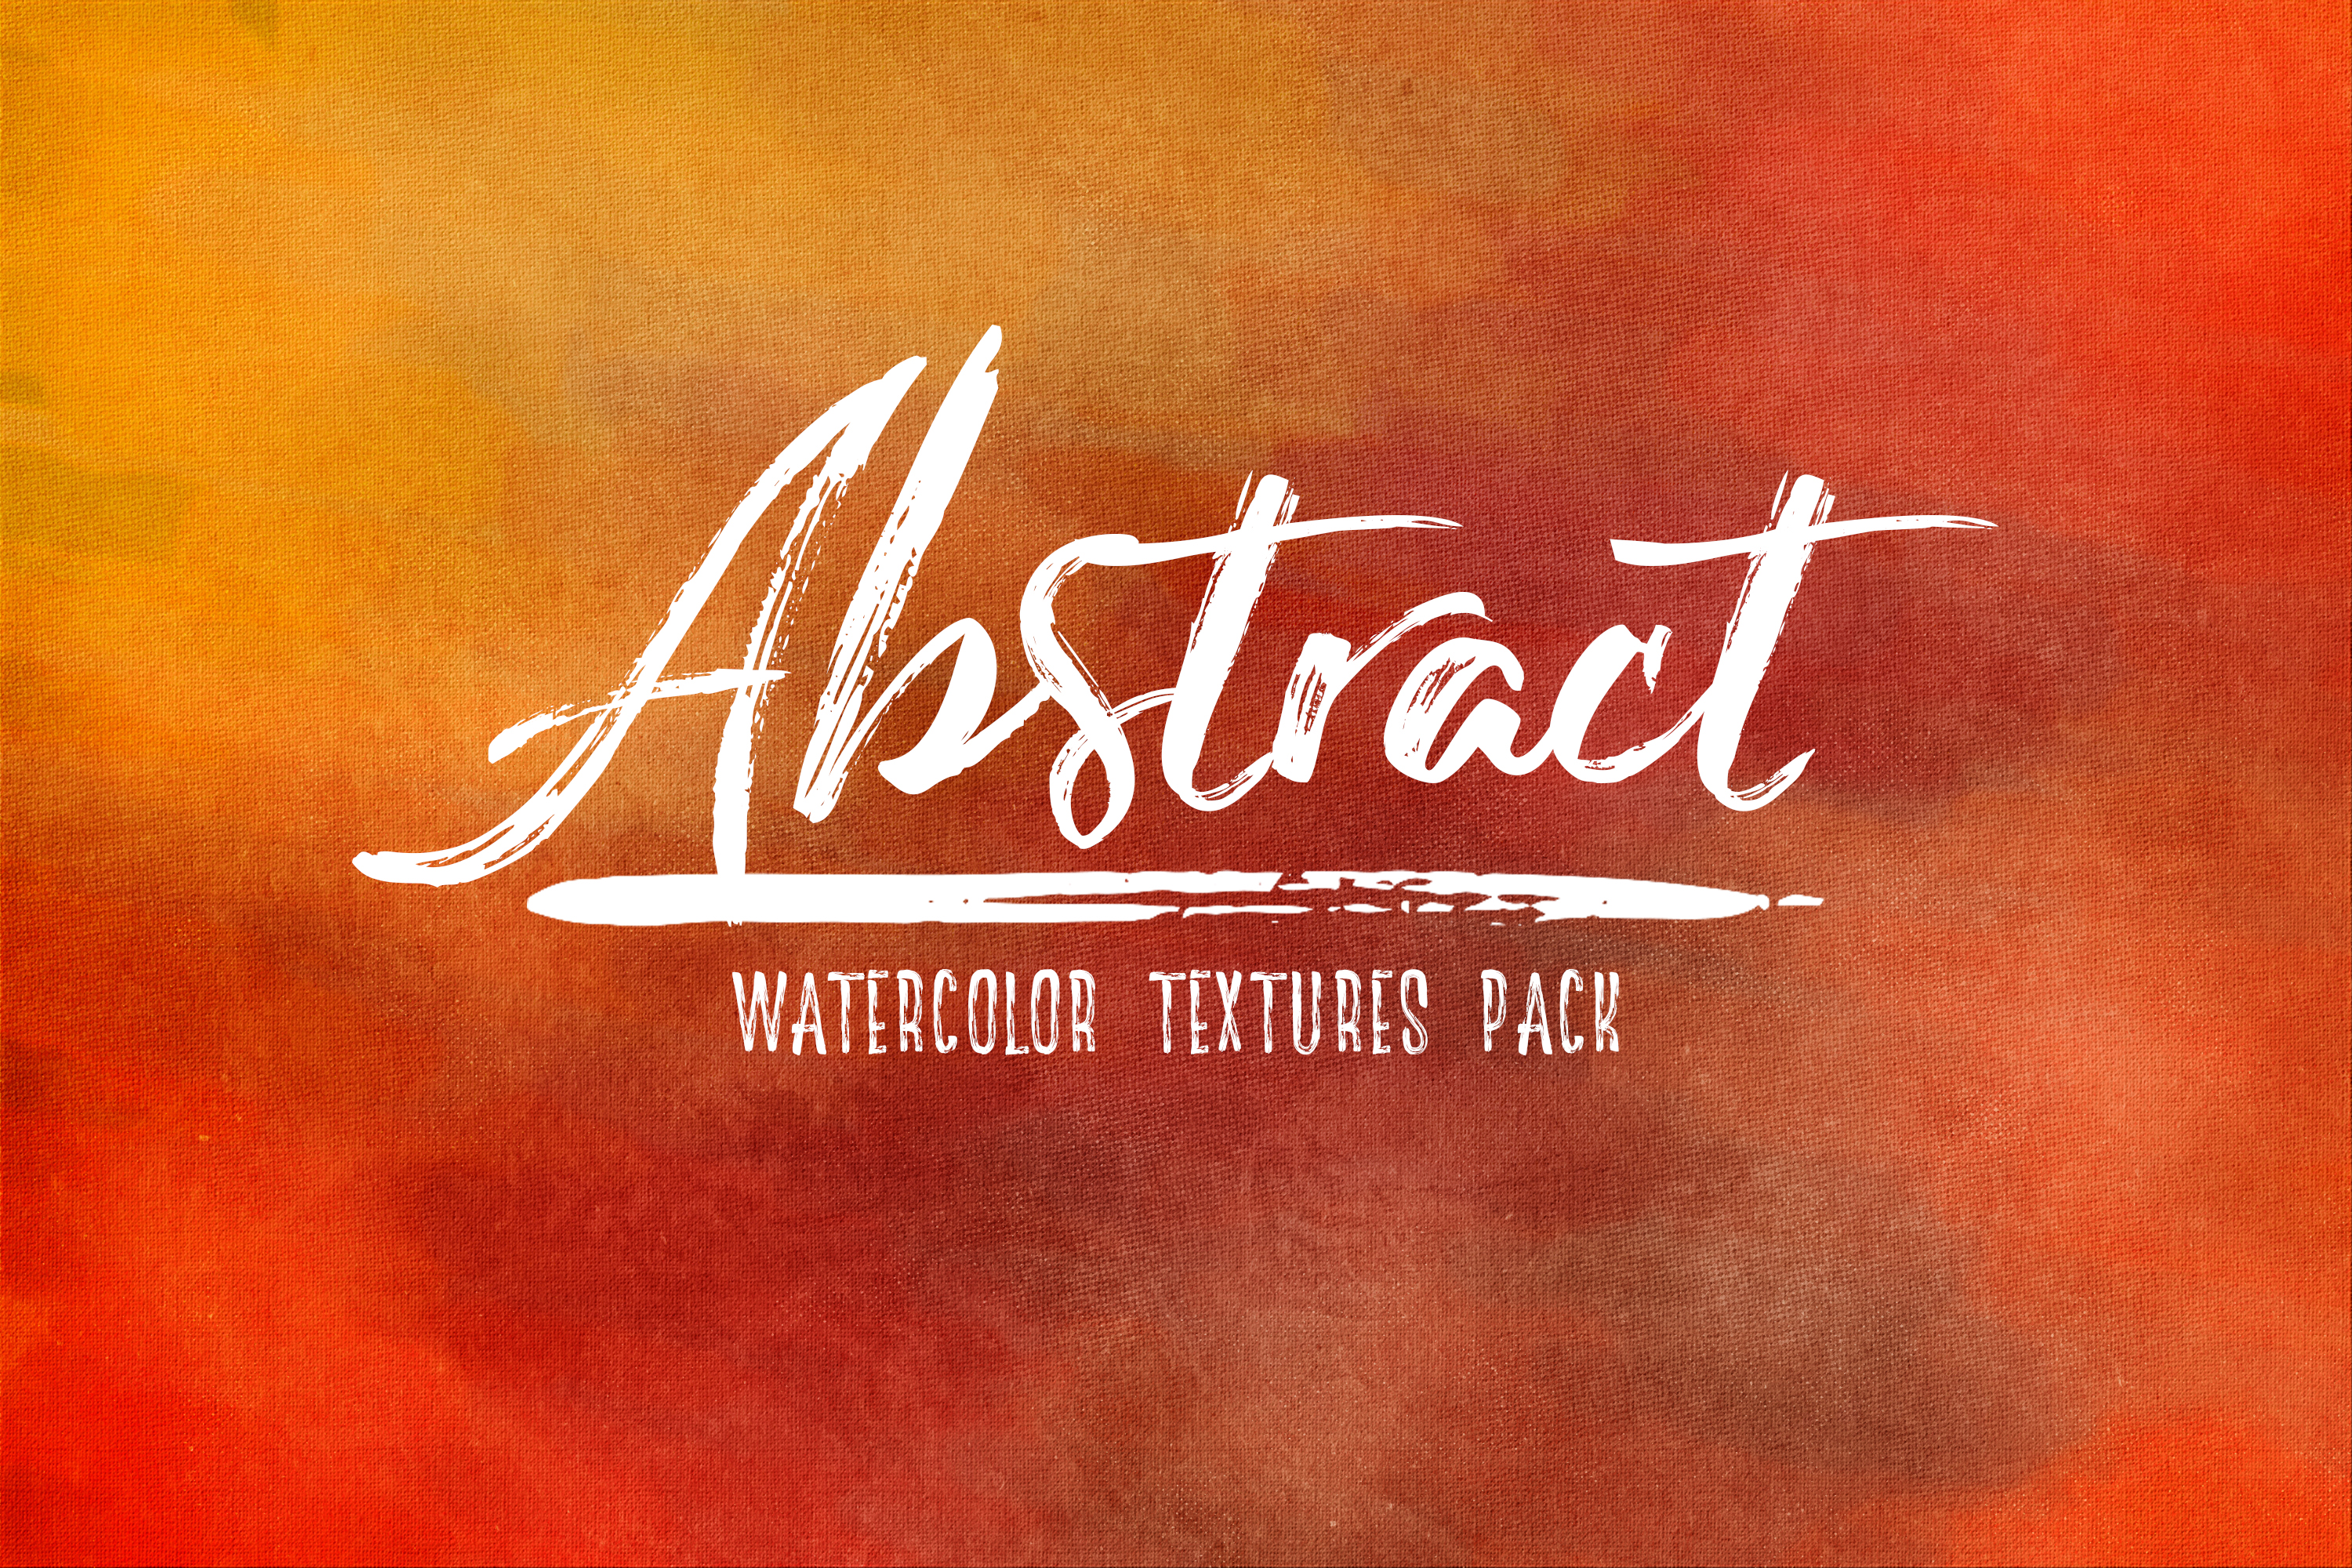 Abstract - Watercolor Textures Pack example image 1